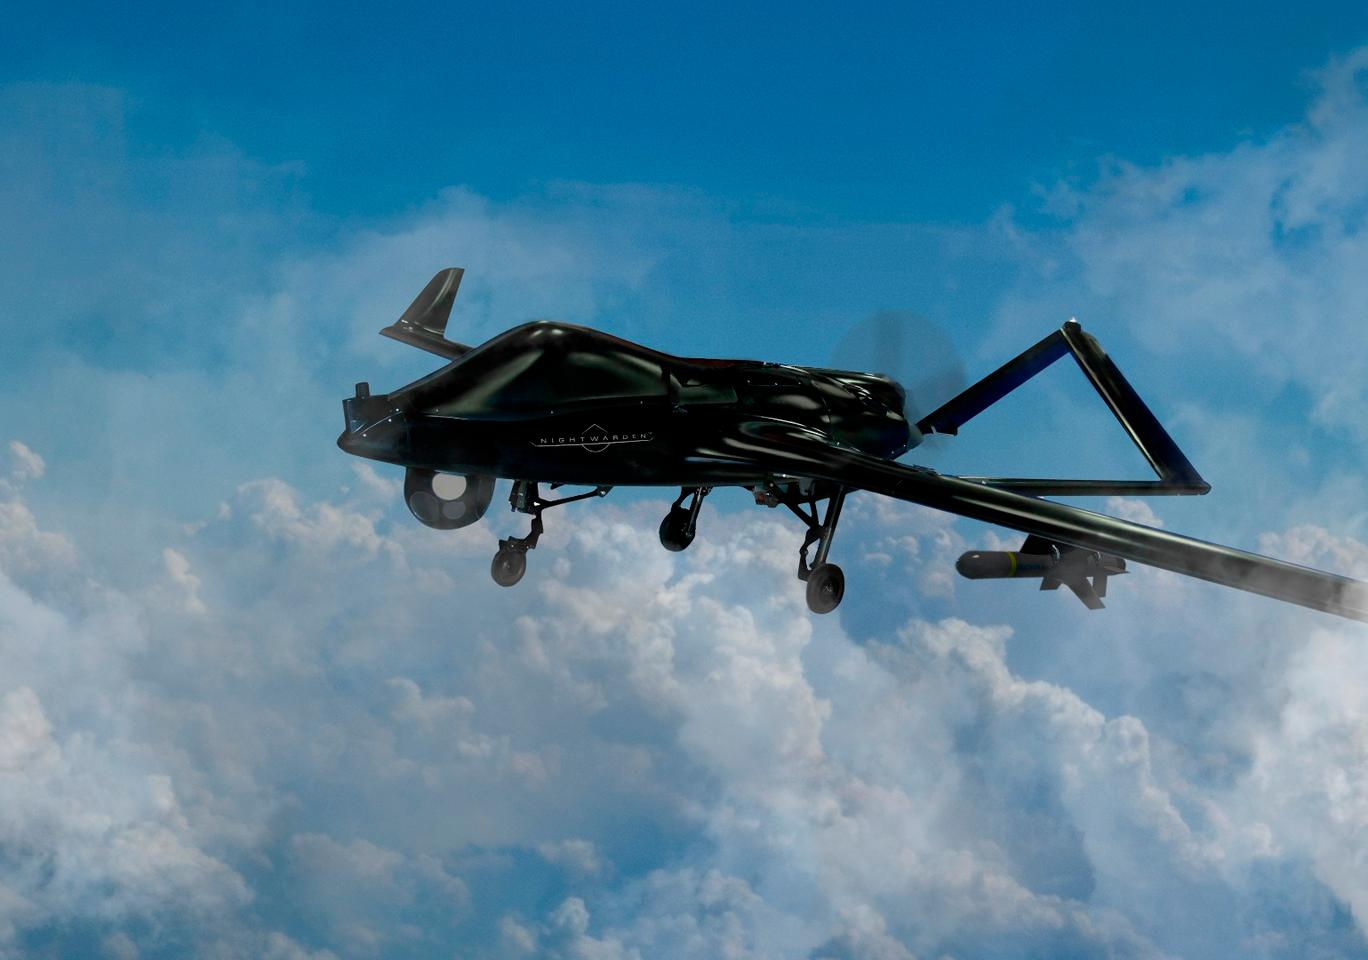 The Nightwarden is the latest variant of the Shadow UAV system